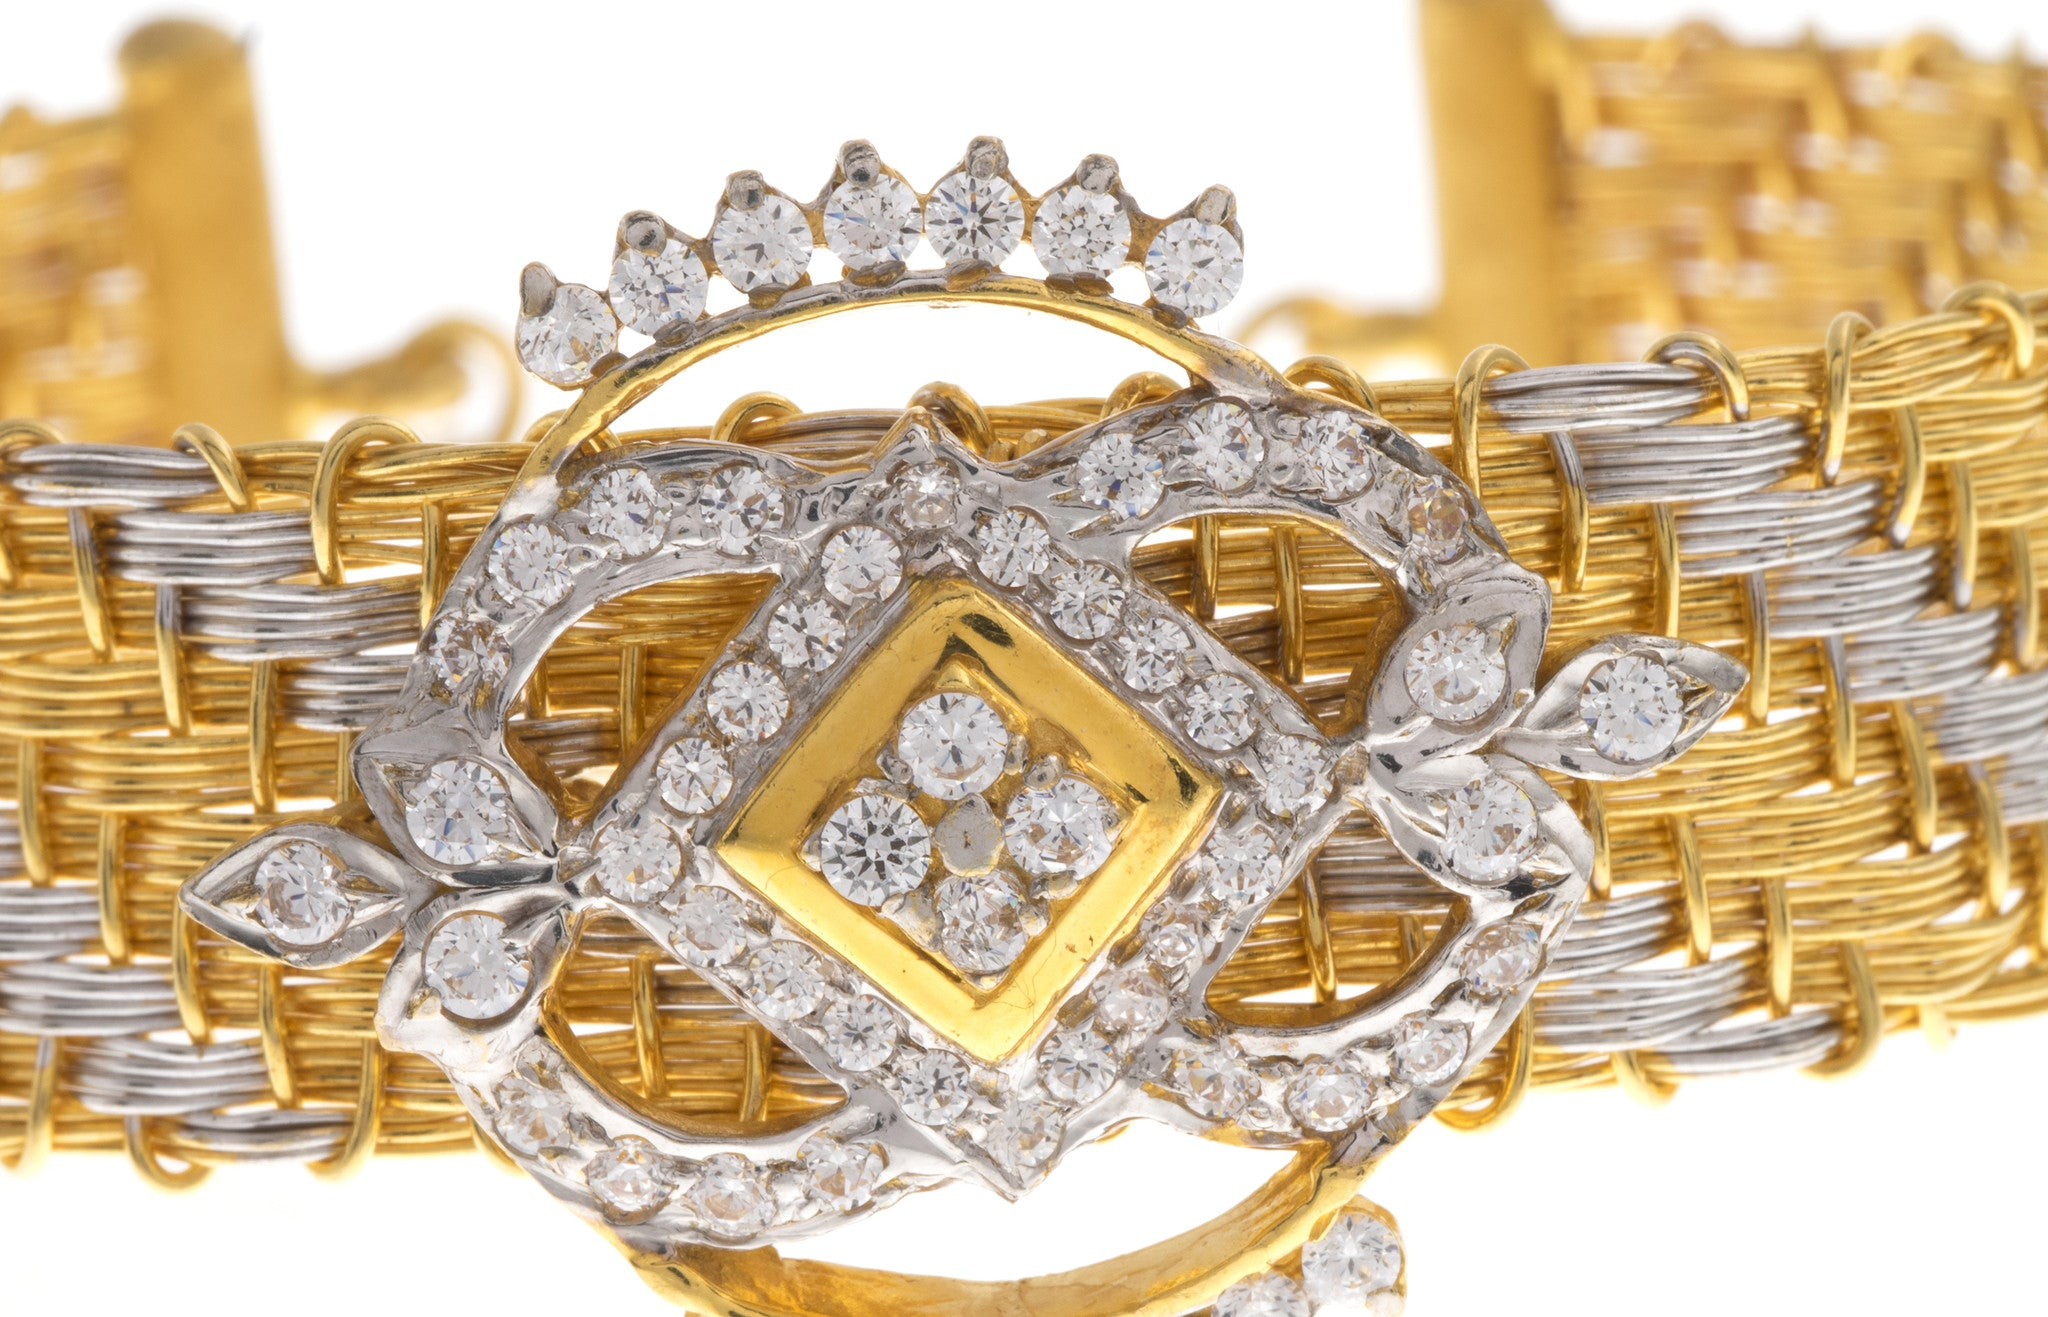 22ct Yellow Gold Bangle with Cubic Zirconia Stones and Rhodium Plating (G1777), Minar Jewellers - 3